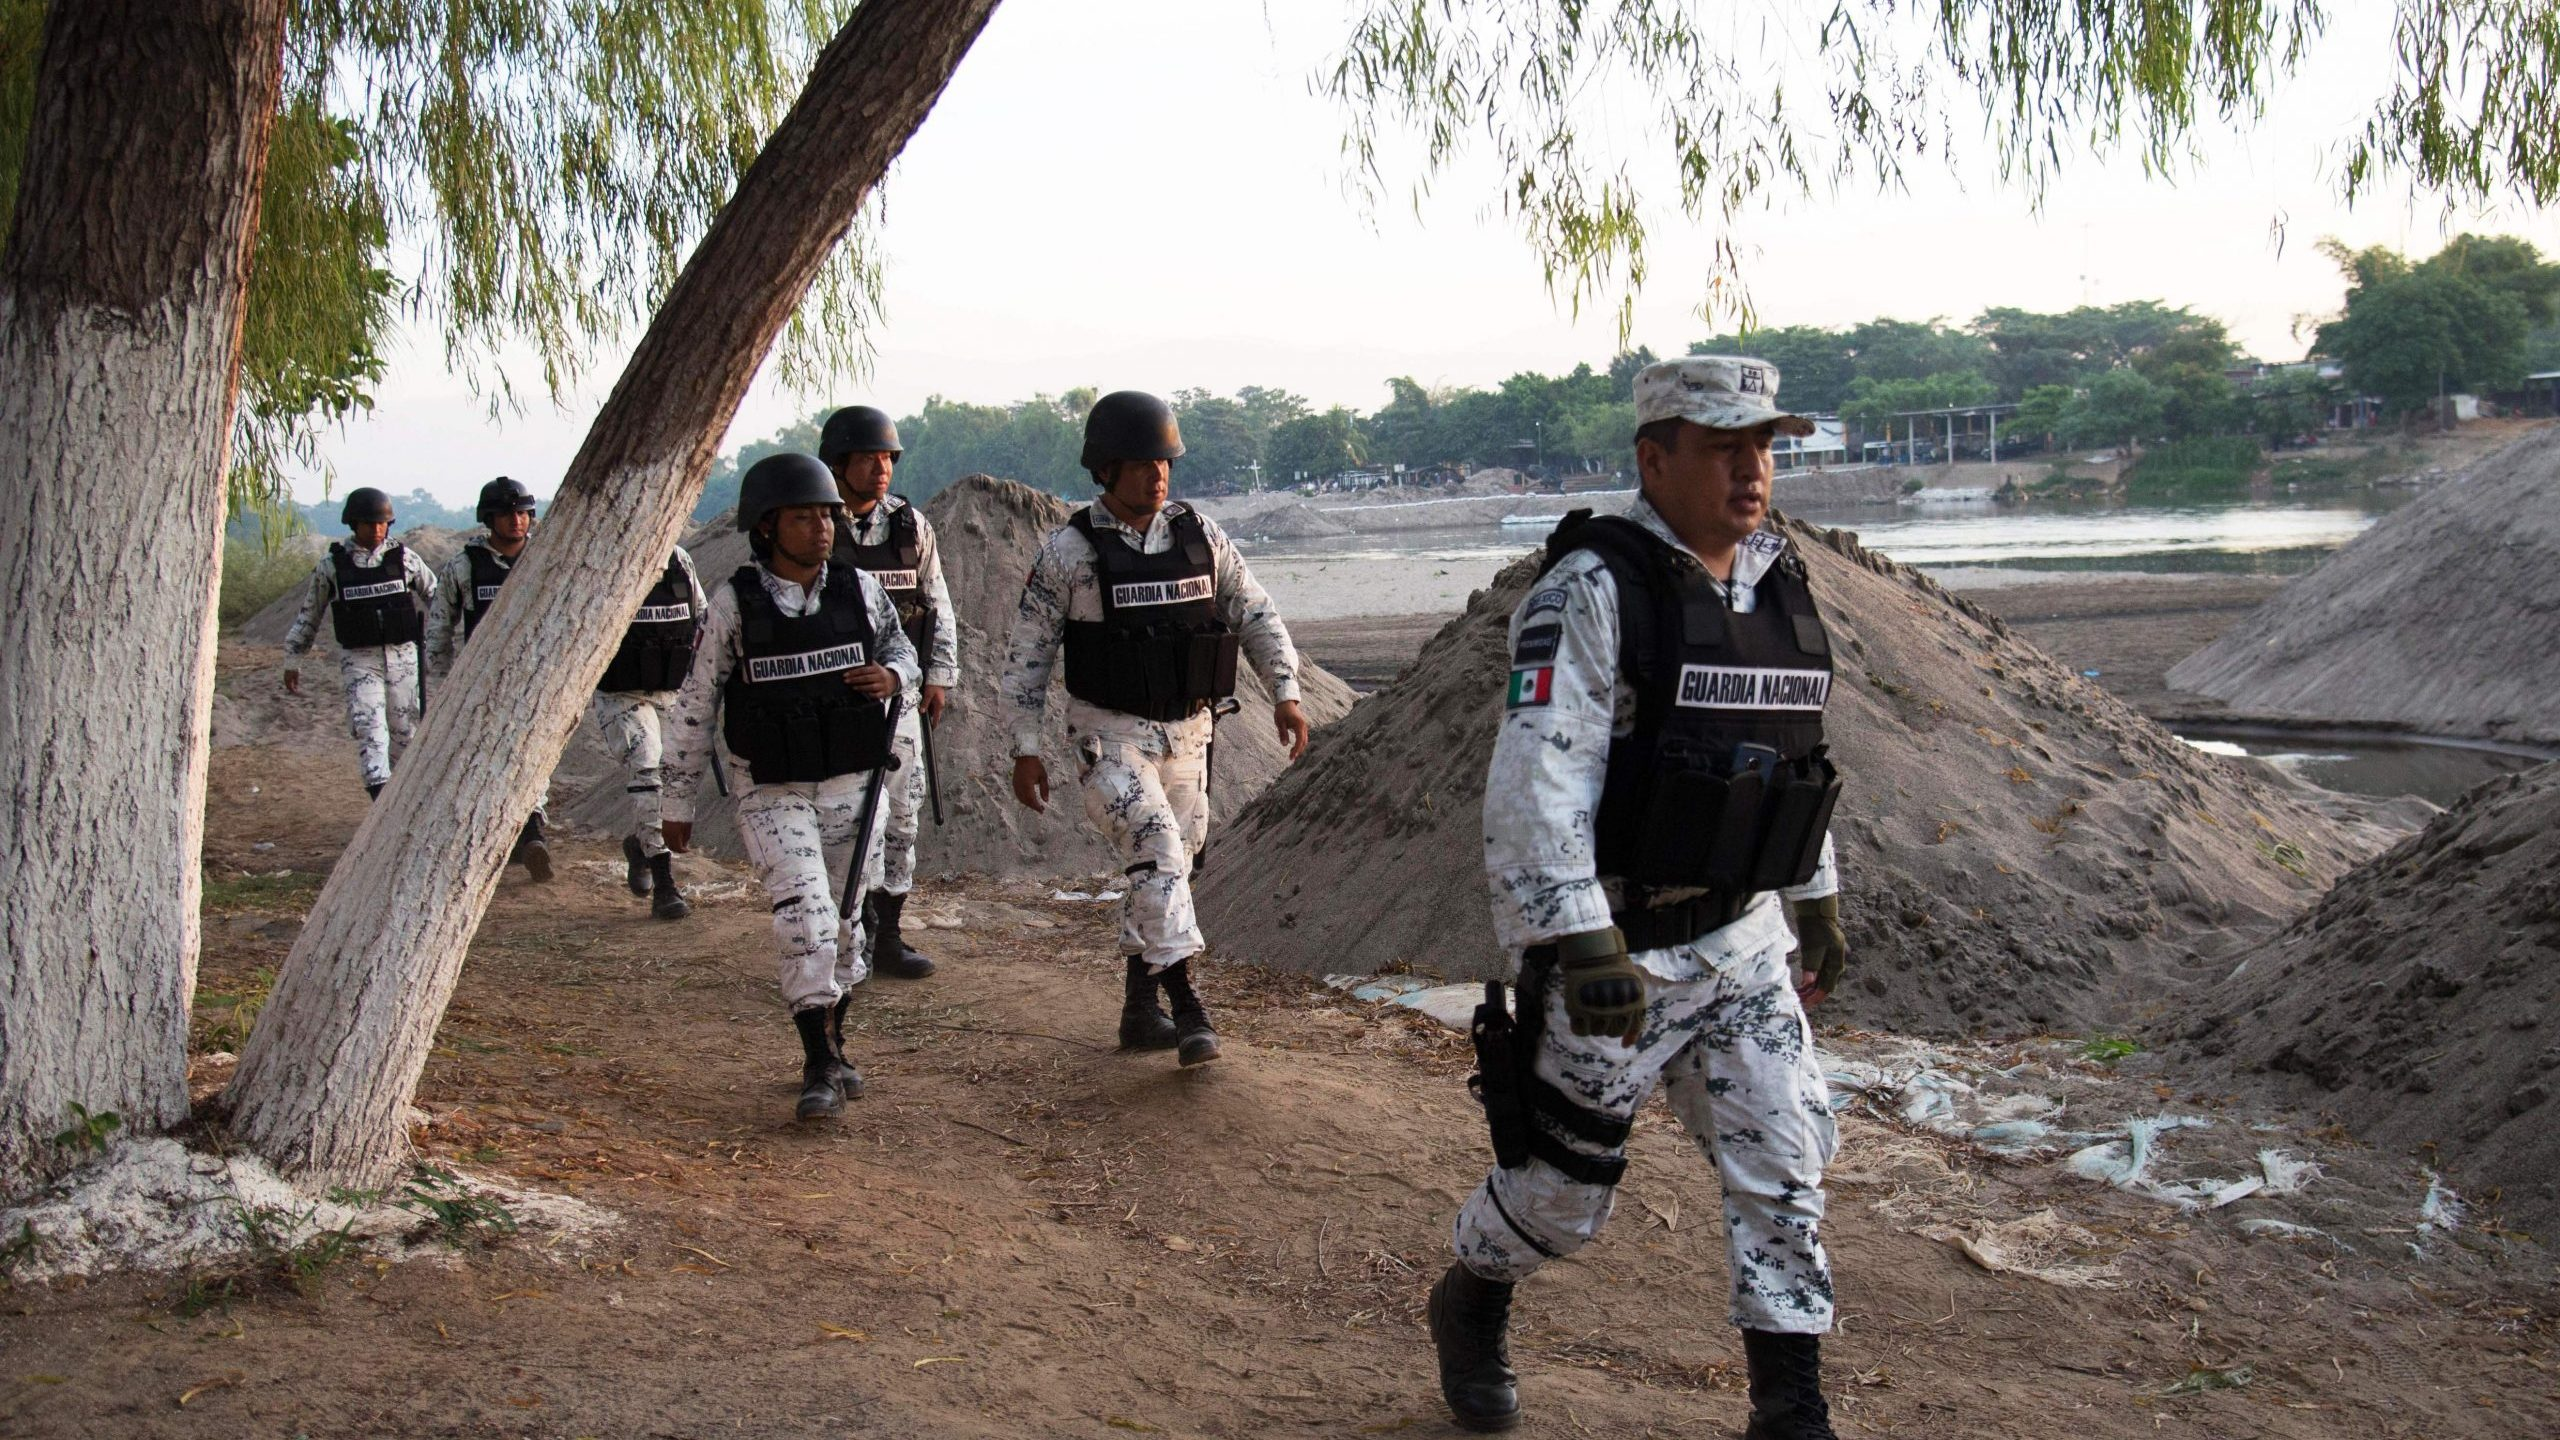 Members of the Mexican National Guard patrol along the banks of the Suchiate River in Ciudad Hidalgo, Chiapas State, Mexico, on Jan. 18, 2020. (Credit: ISAAC GUZMAN/AFP via Getty Images)